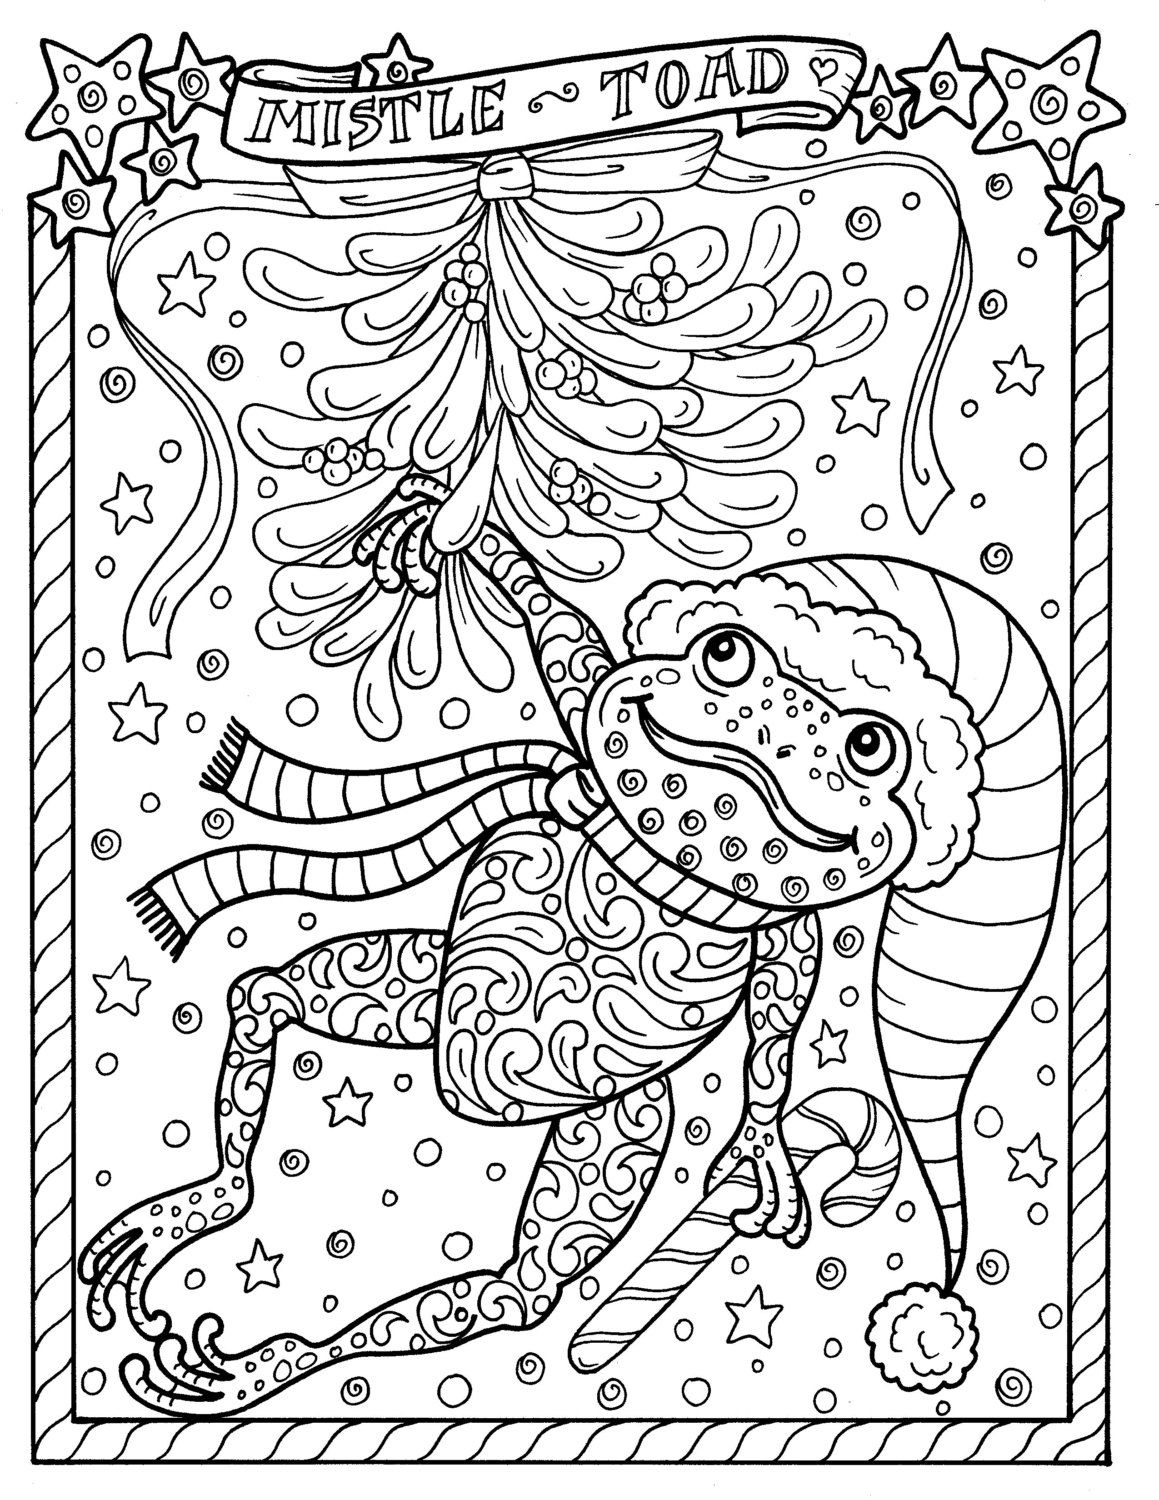 Frog Printable Coloring Page Christmas Mistle Toad Coloring Etsy Christmas Coloring Sheets Frog Coloring Pages Coloring Pages